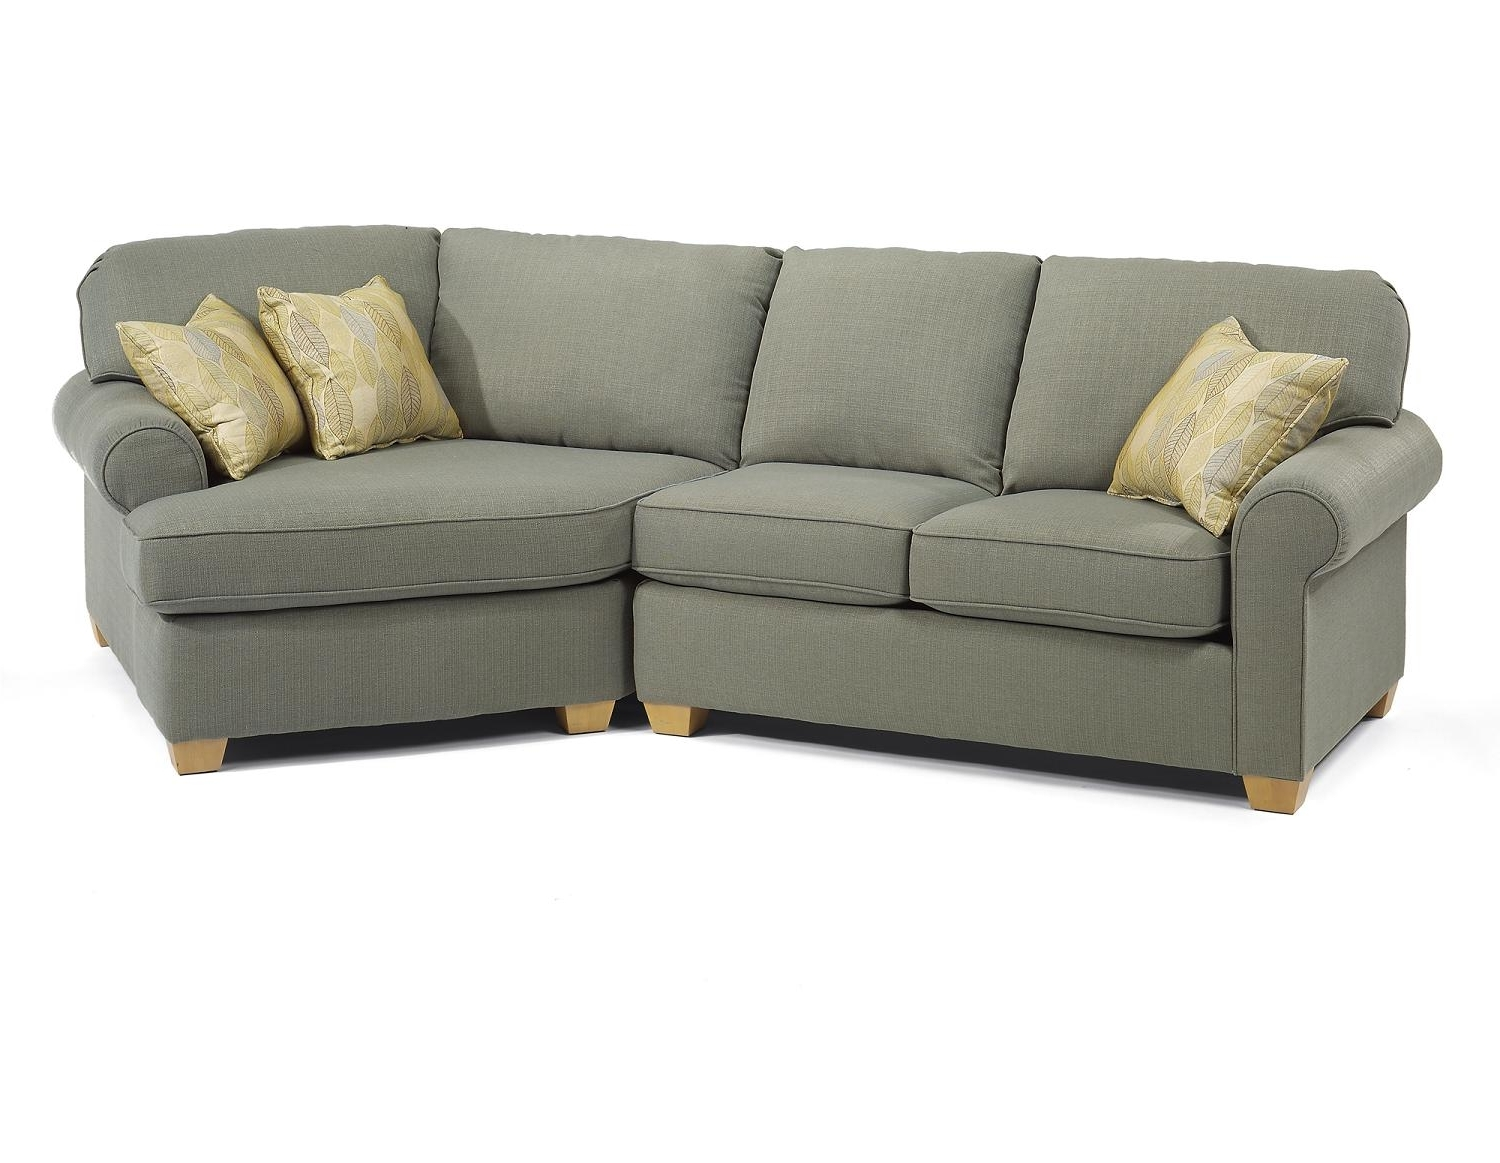 Stylish Small Sectional Sofa With Chaise — Fabrizio Design Regarding Trendy Small Sectional Sofas (View 14 of 15)